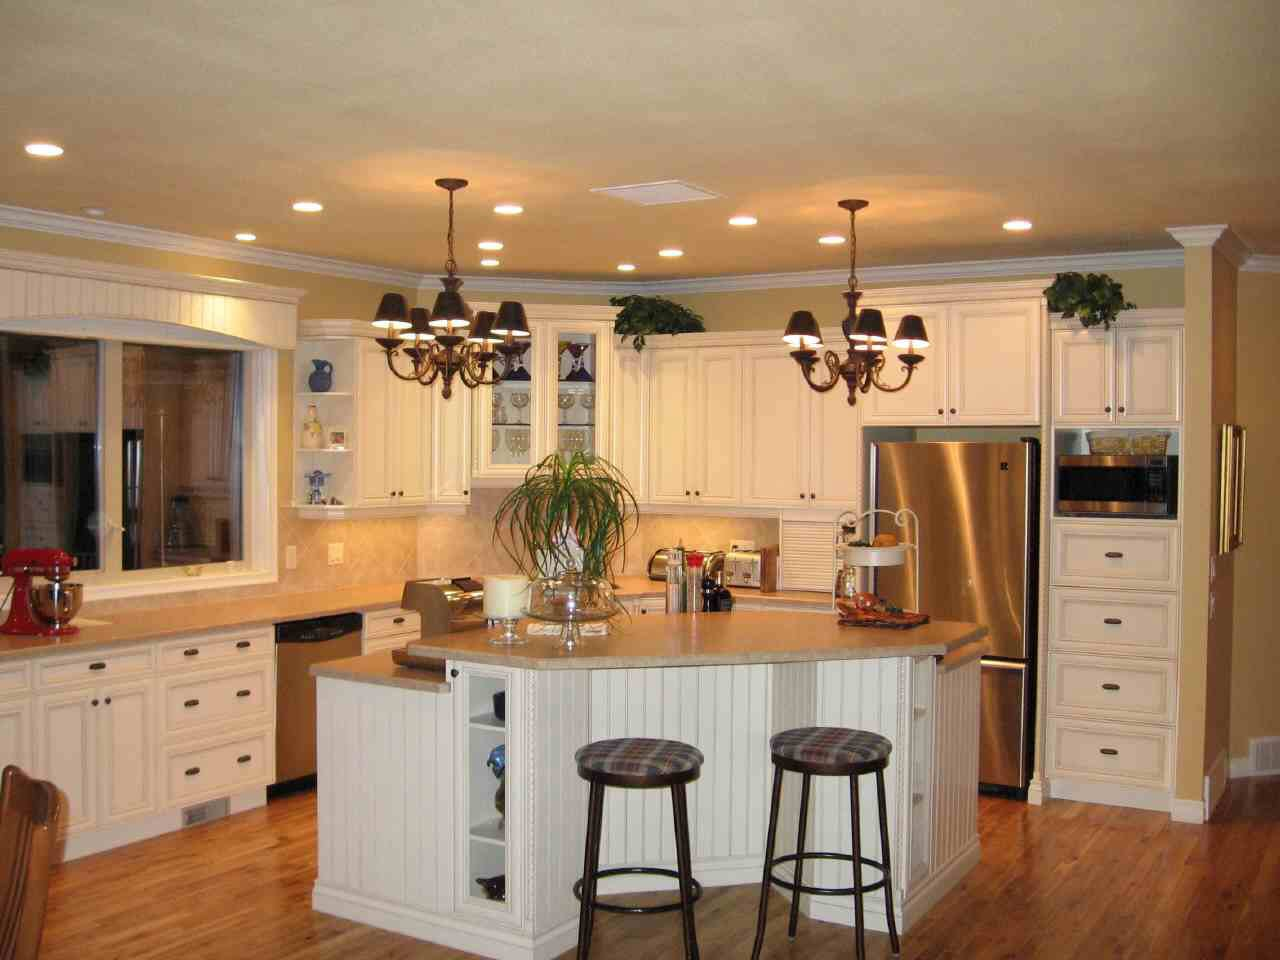 Great Kitchen Island Design Ideas for Small Kitchens 1280 x 960 · 109 kB · jpeg